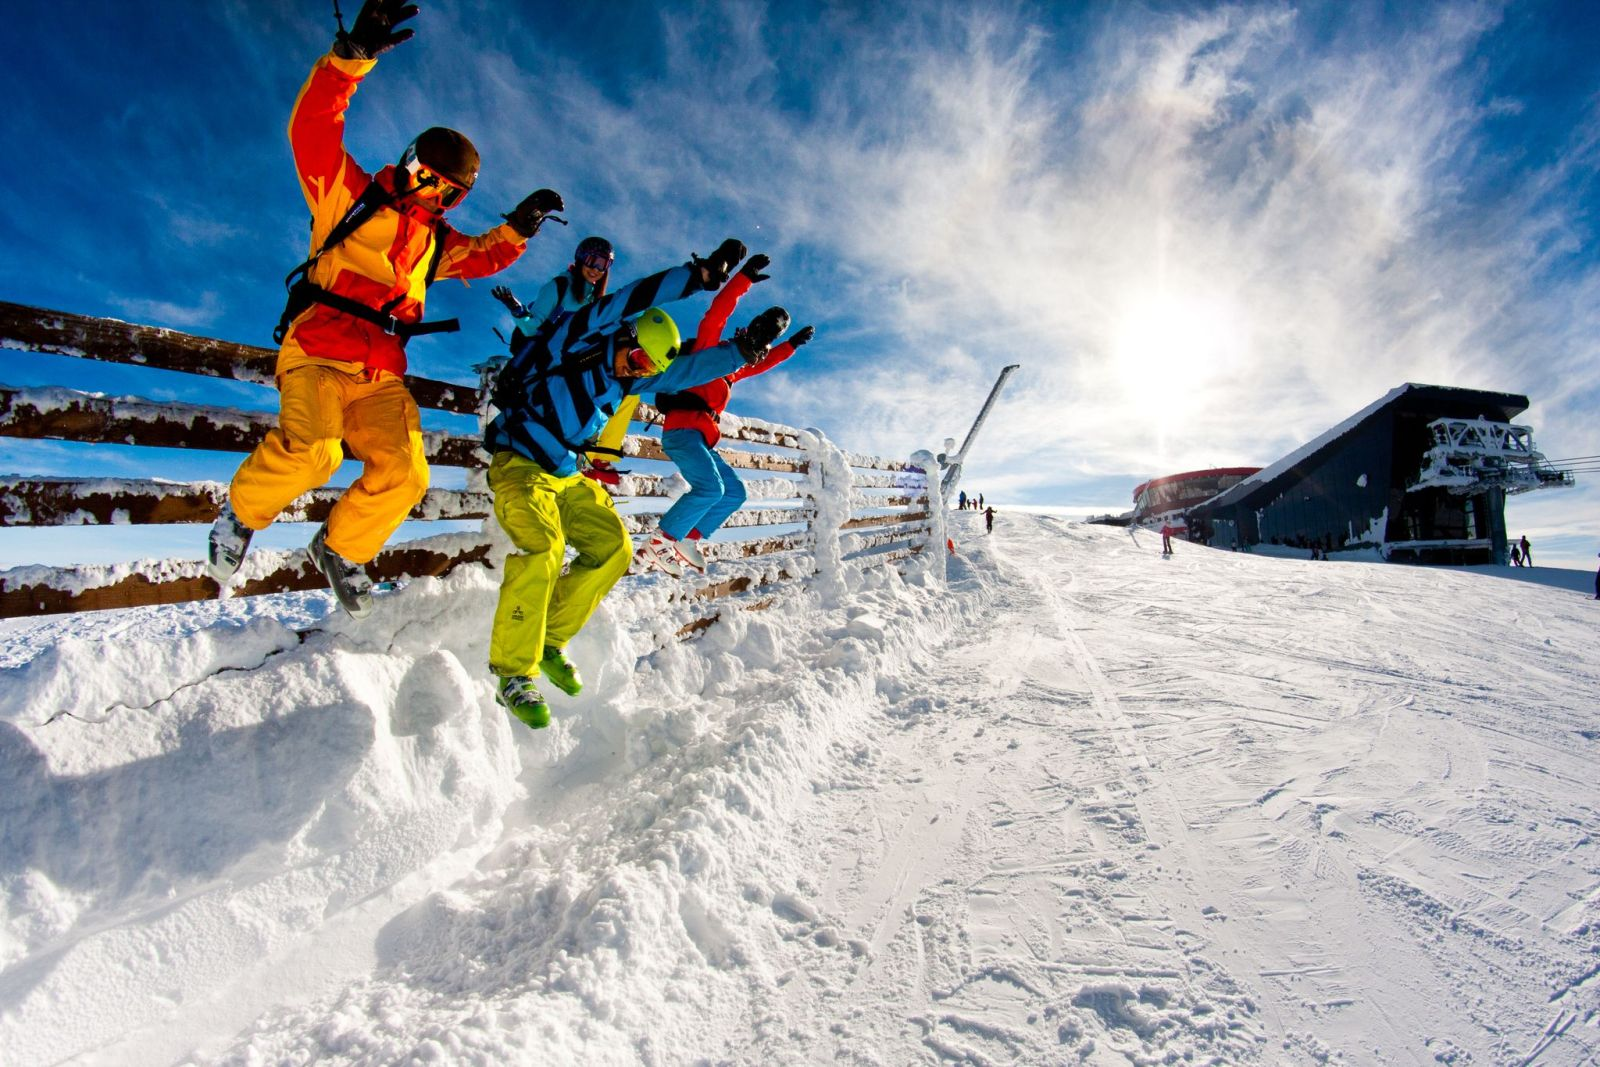 Winter activities Tále cottages Tri Vydry